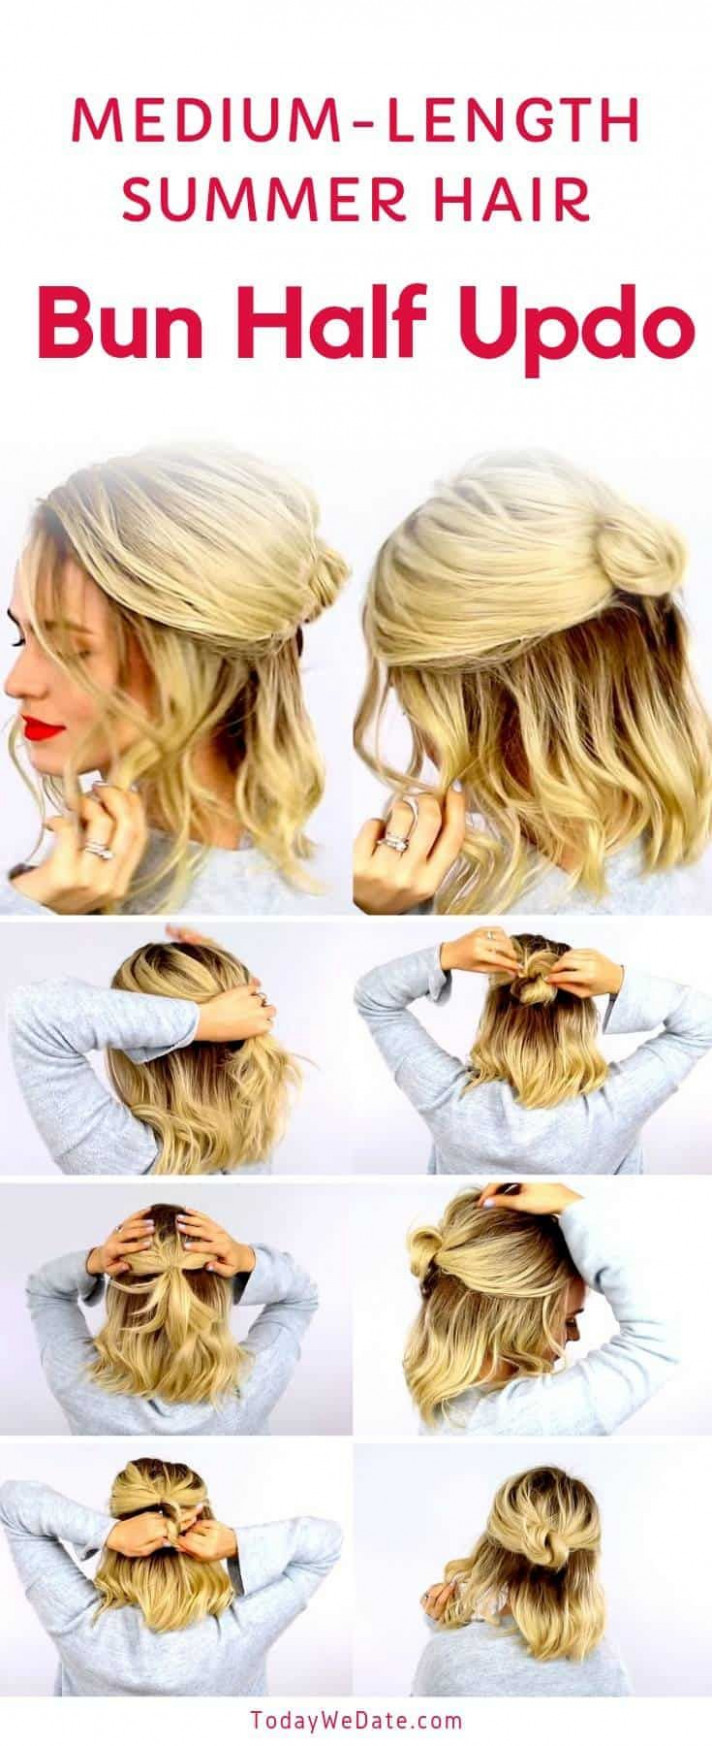 Summer hairstyles half up 8 everyday half up hairstyles | easy